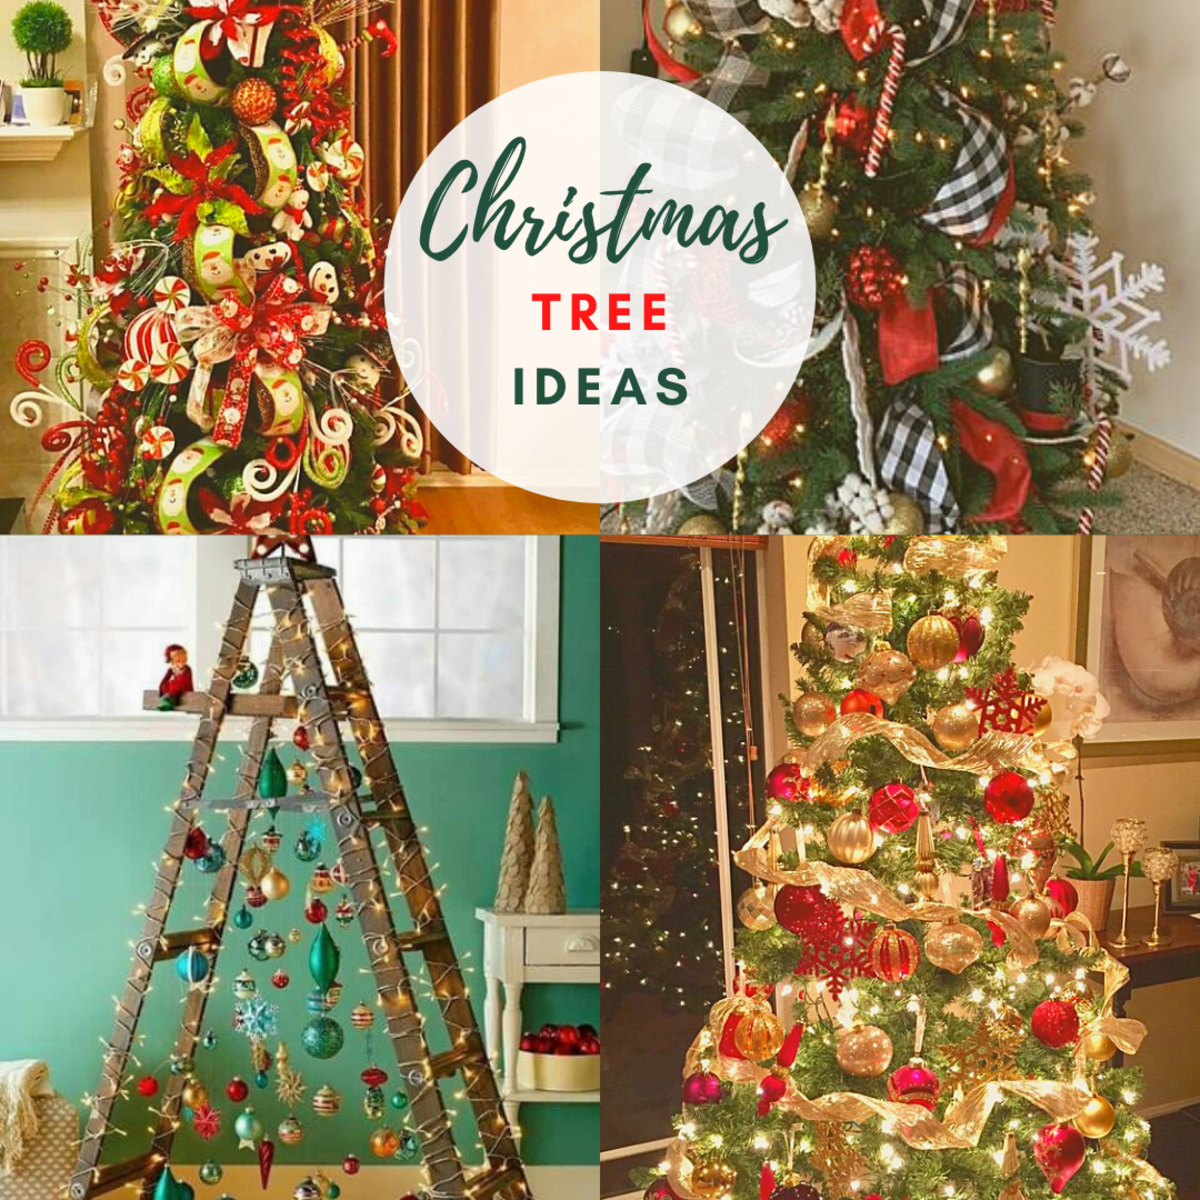 Themed Christmas Tree Ideas